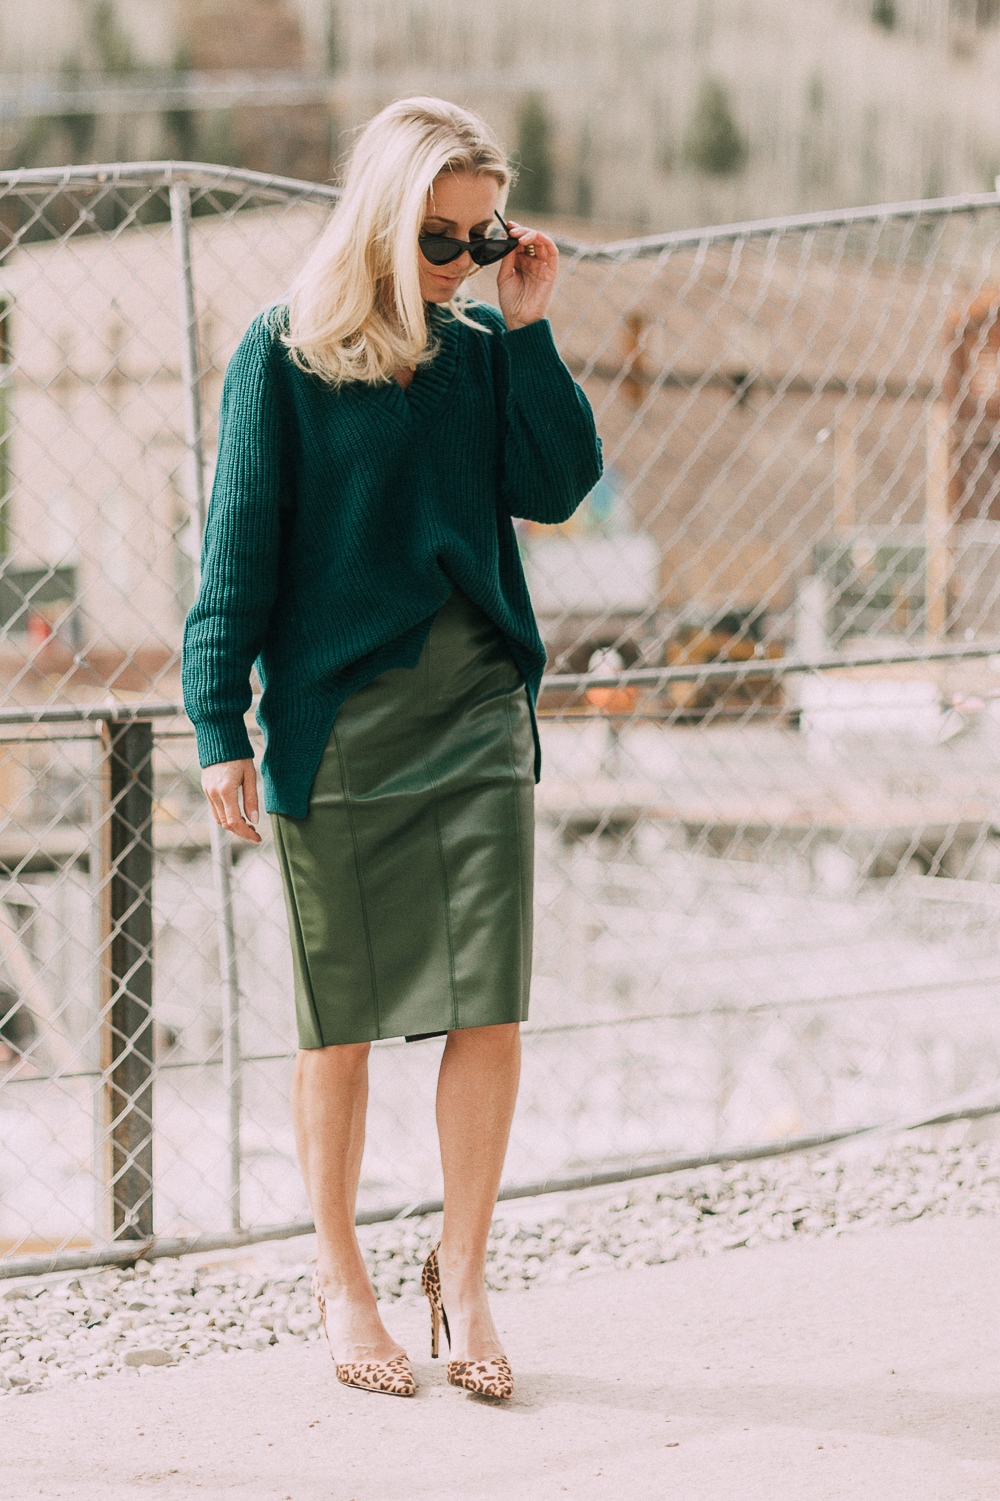 Work Outfit Ideas, what to wear to work, outfit ideas that are modern and unexpected from Express, featuring a faux leather green pencil skirt, and chunky knit tunic sweater in green, and leopard print pumps on blonde woman